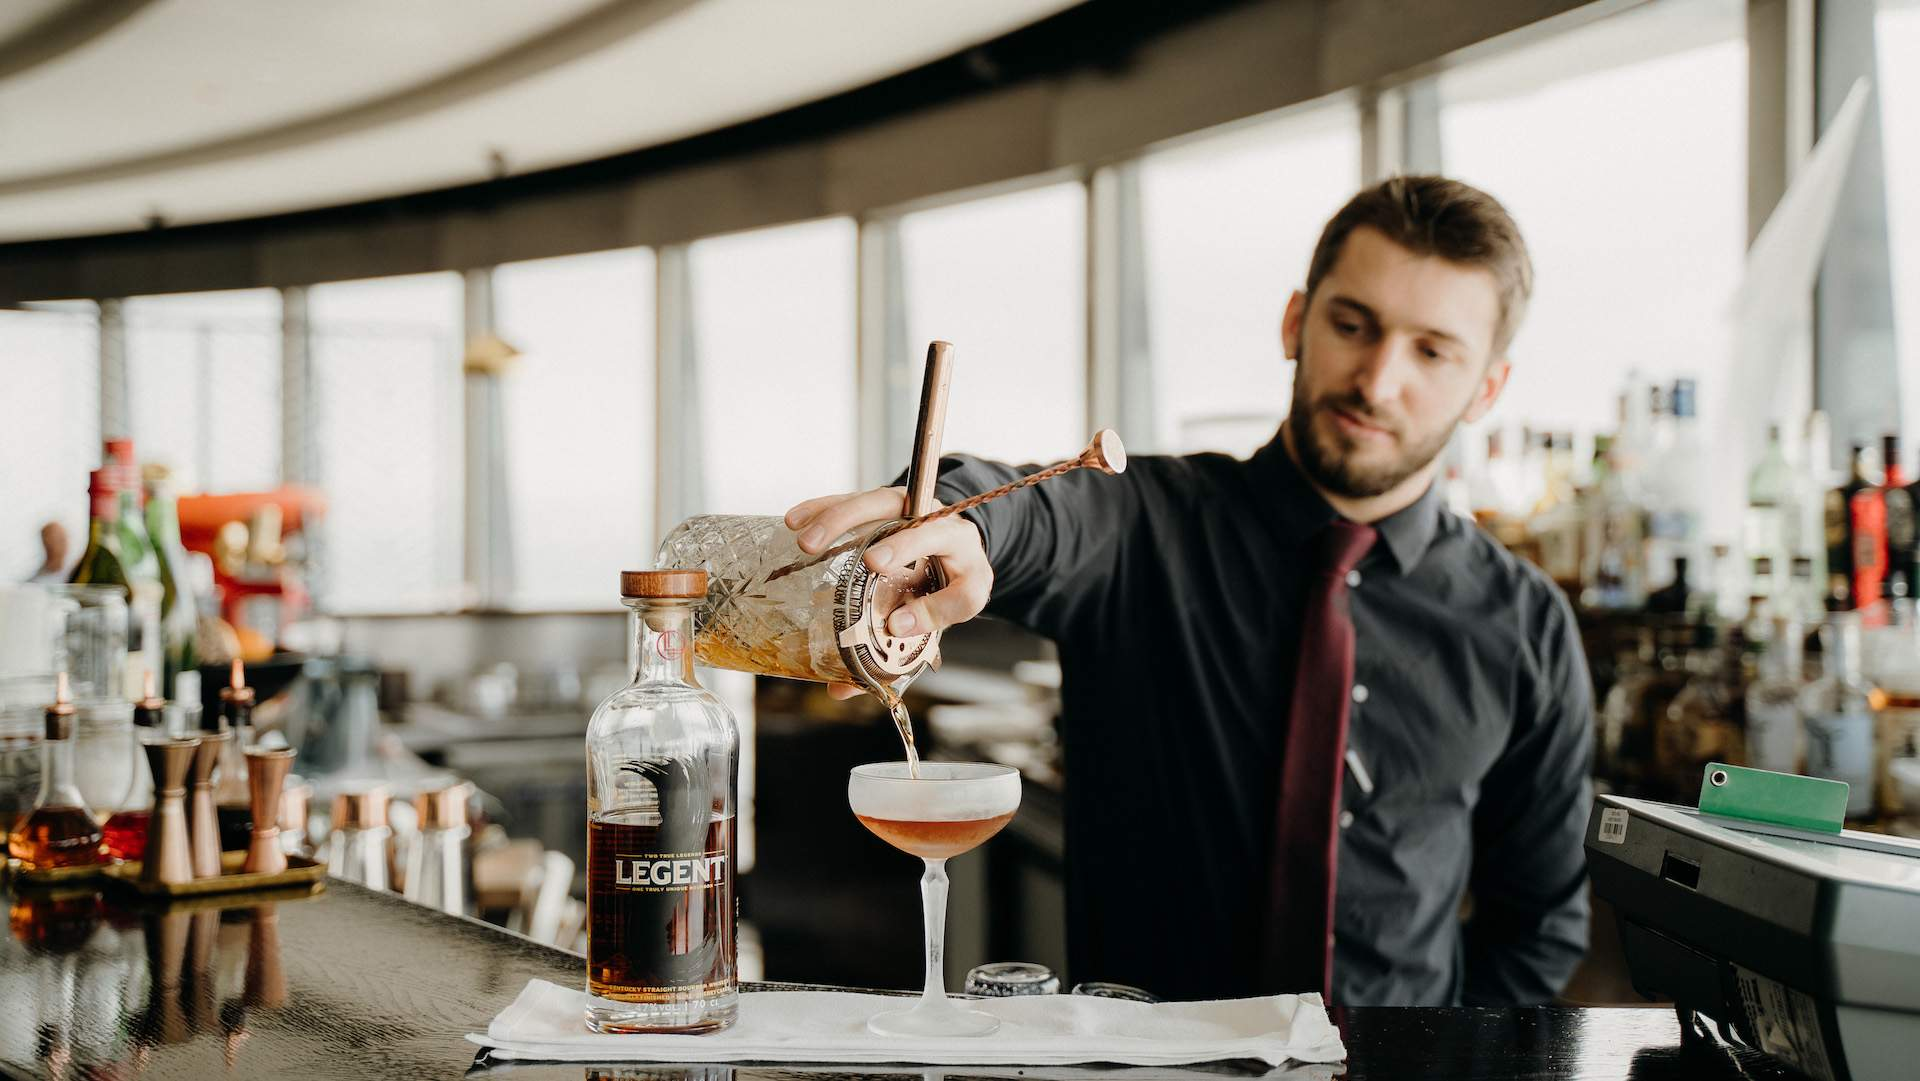 A Spring Recipe for The Sugar Club's Classic and Reserved Legent Manhattan